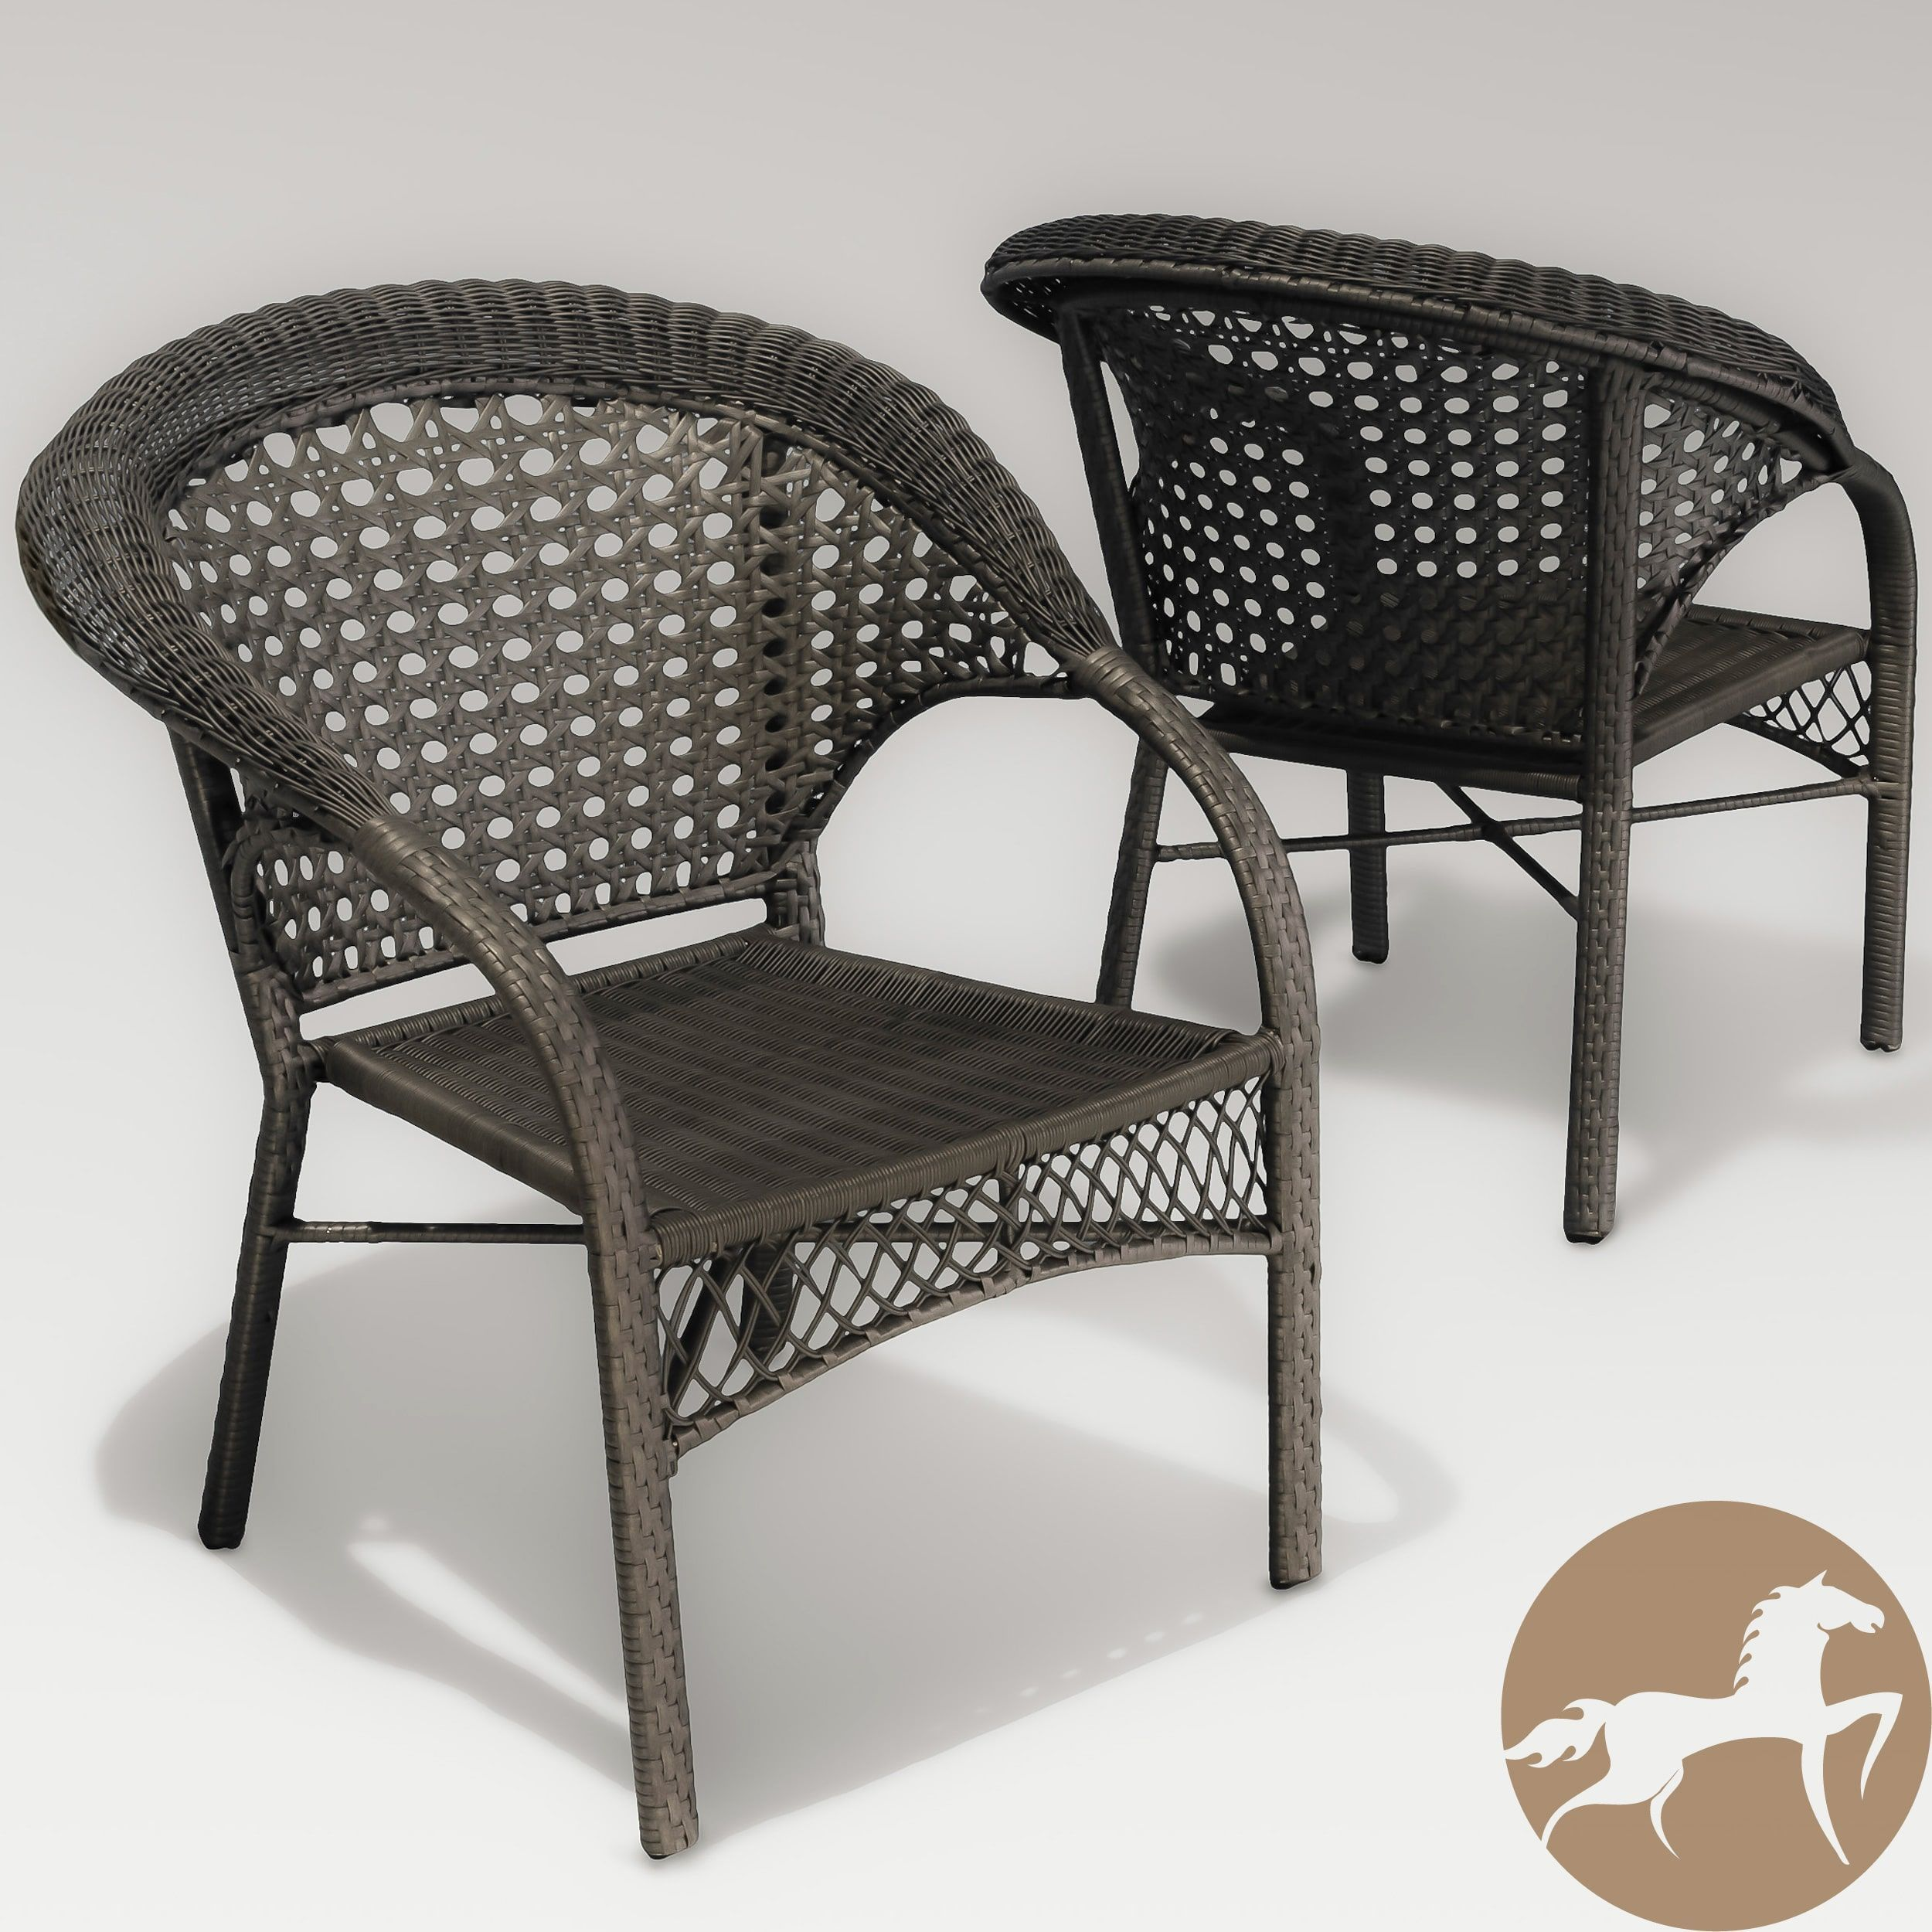 Maria Dark Grey Wicker Fan Back Outdoor Club Chairs Set of 2 by